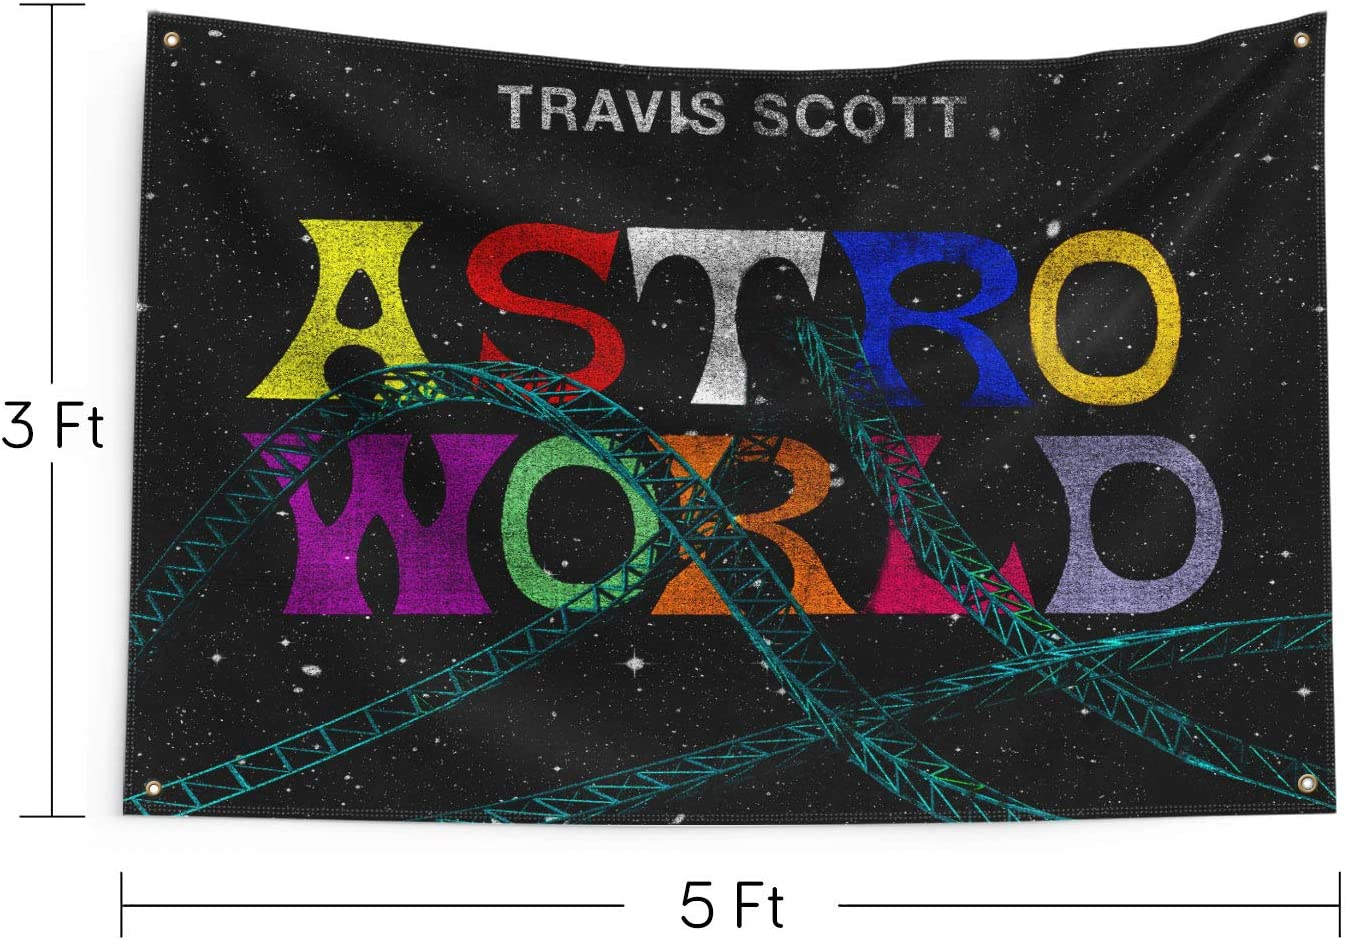 Astroworld Travis Scott Flag Funny Poster UV Resistance Fading /& Durable Man Cave Wall Flag Heavy Duty with Brass Grommets for College Dorm Room Decor,Outdoor,Parties,Gift,Tailgates 3x5Ft